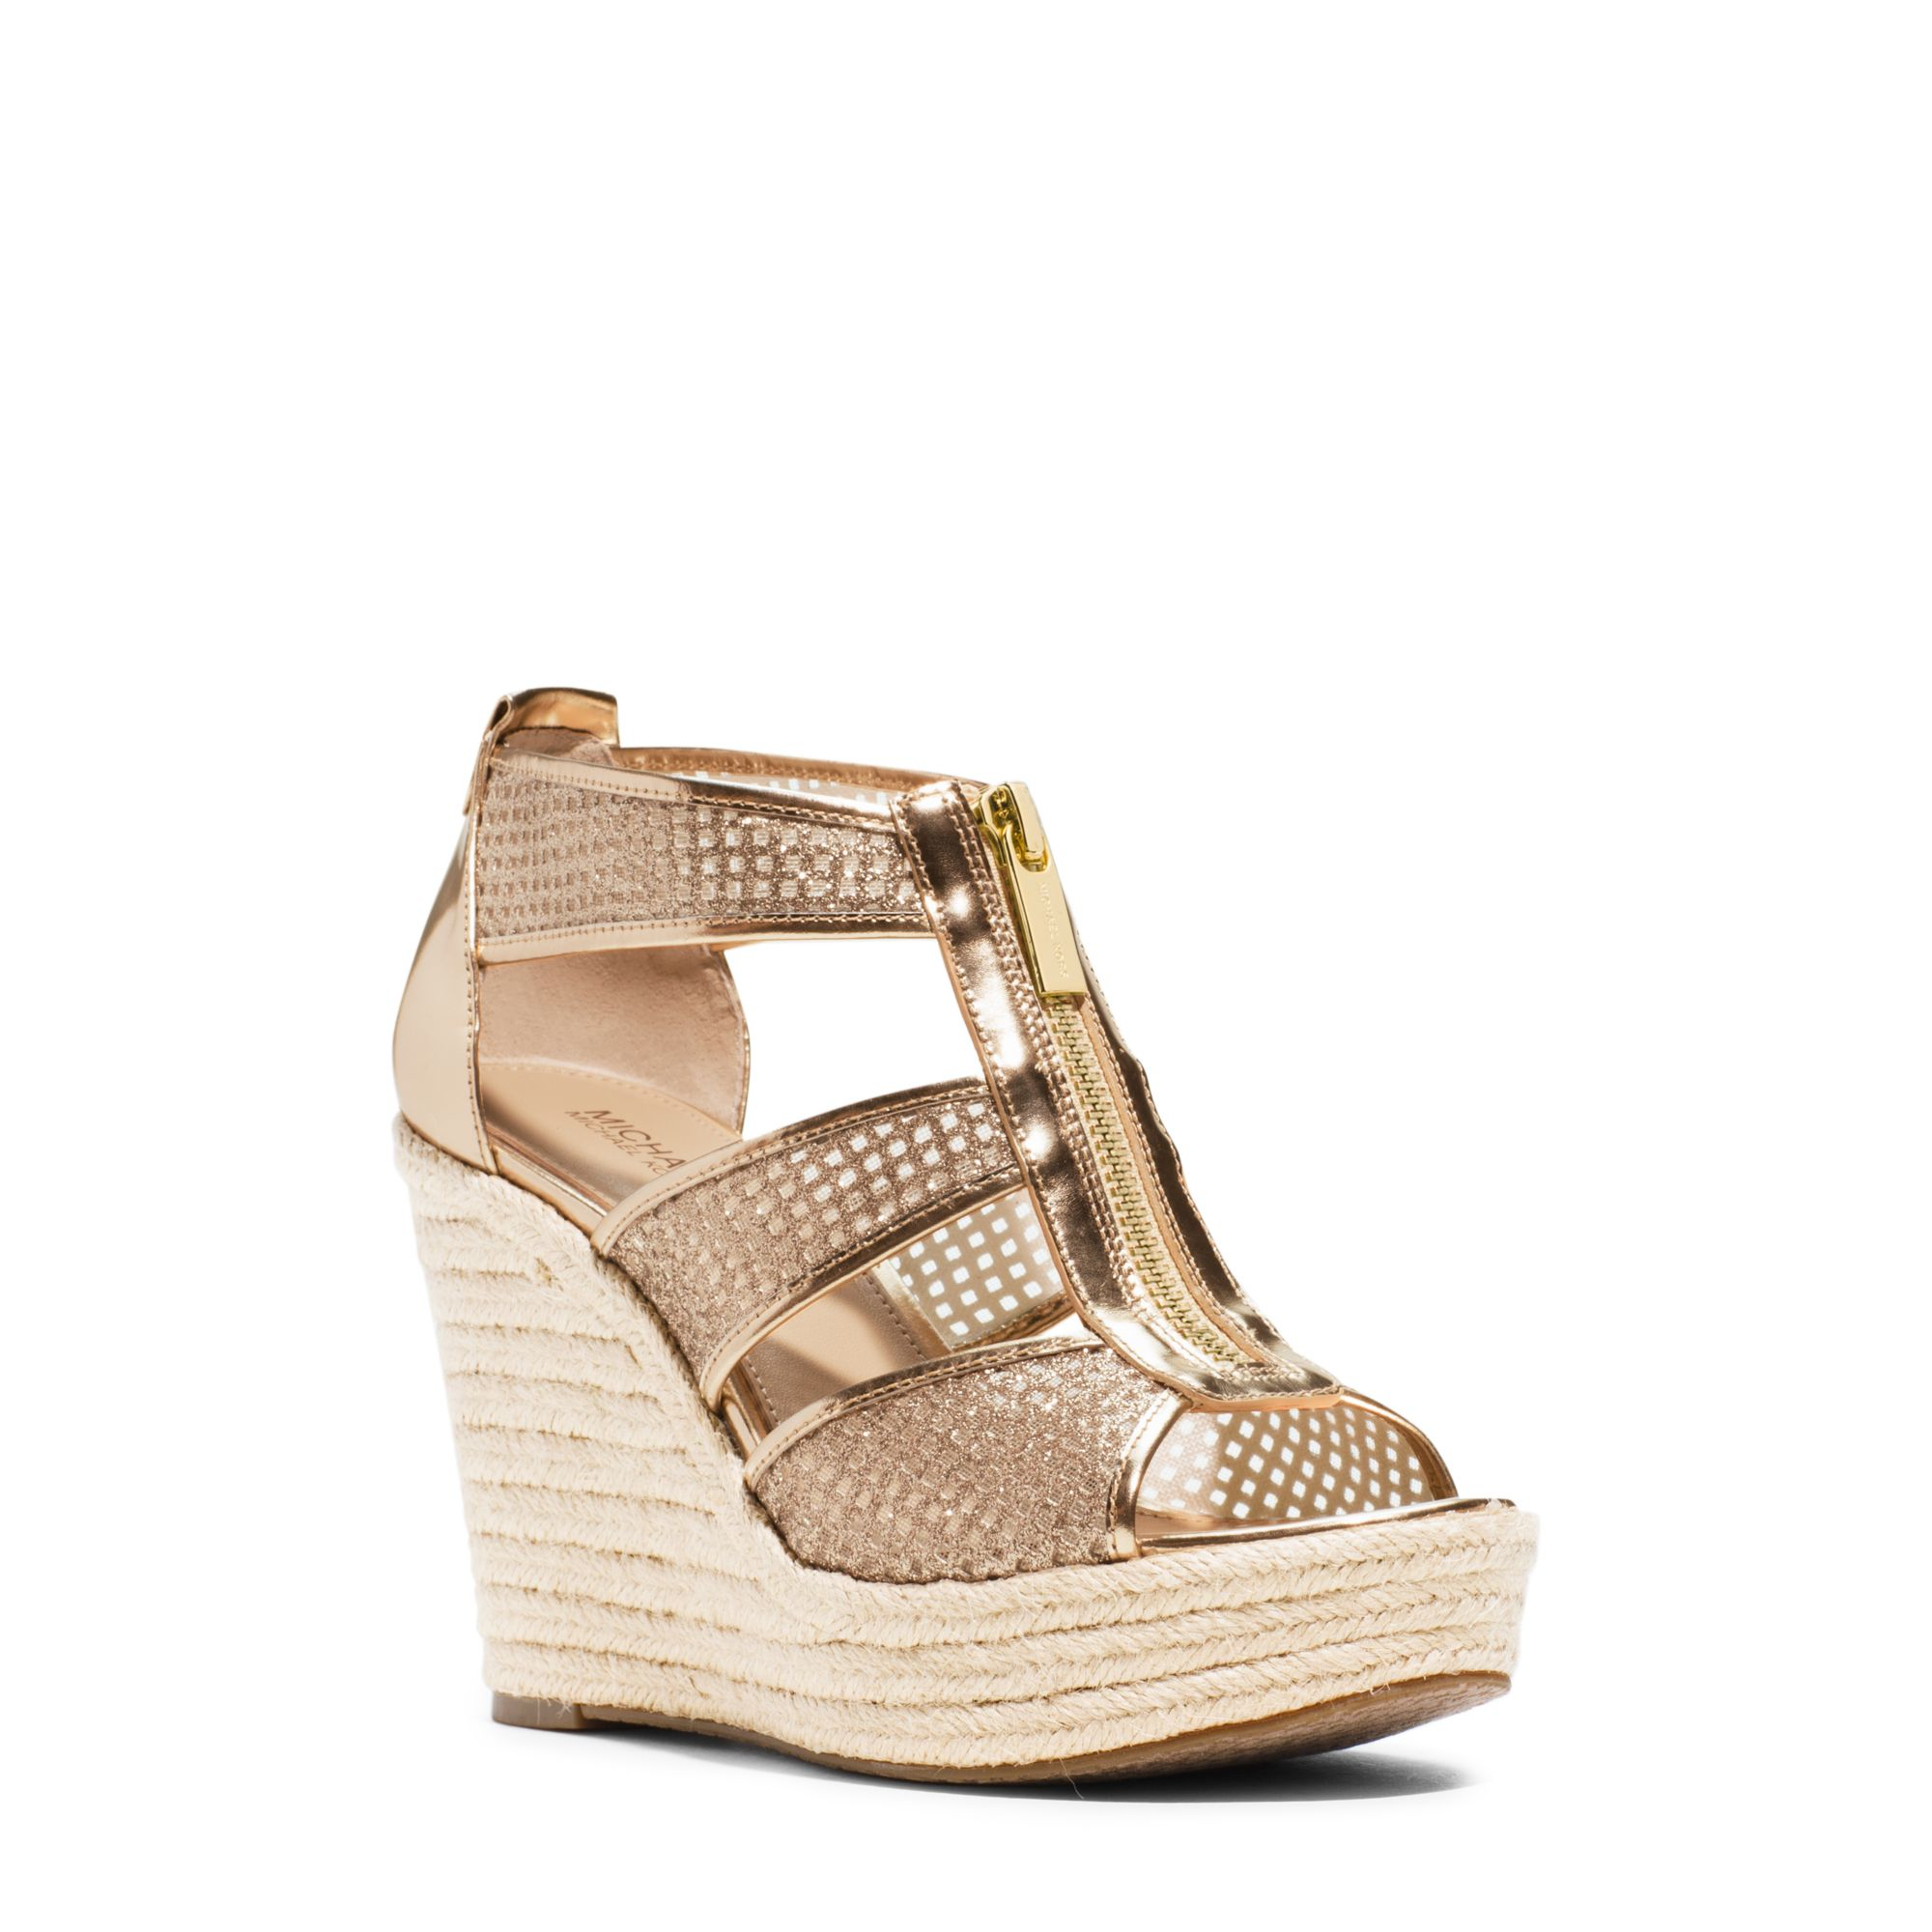 Damita Espadrille Wedge Sandals